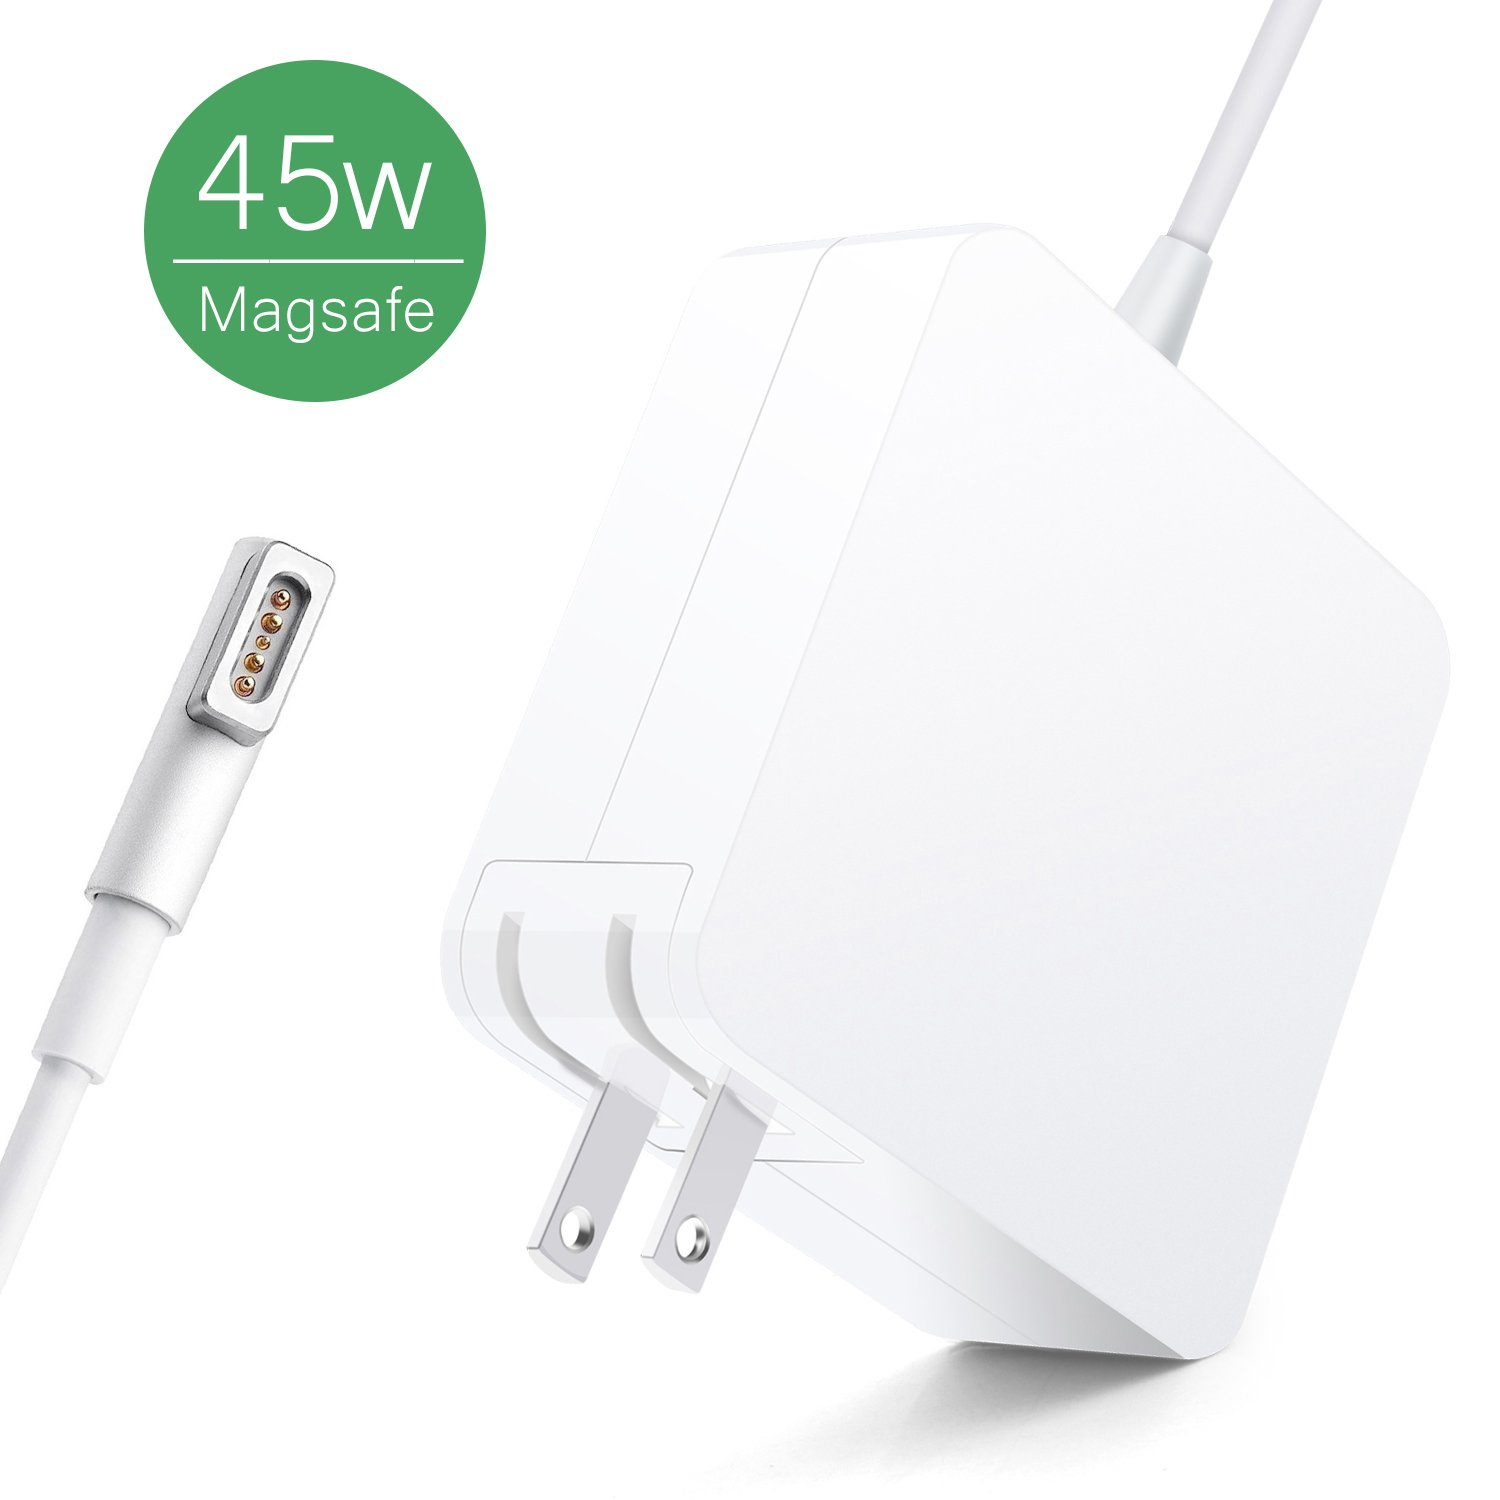 MacBook Air Charger, Kakivan 45w Mac Charger with Magsafe Power Cord L-Tip, MacBook Charger 45w Replacement for MacBook Air 11/13 Inch (Mid2012 Before)